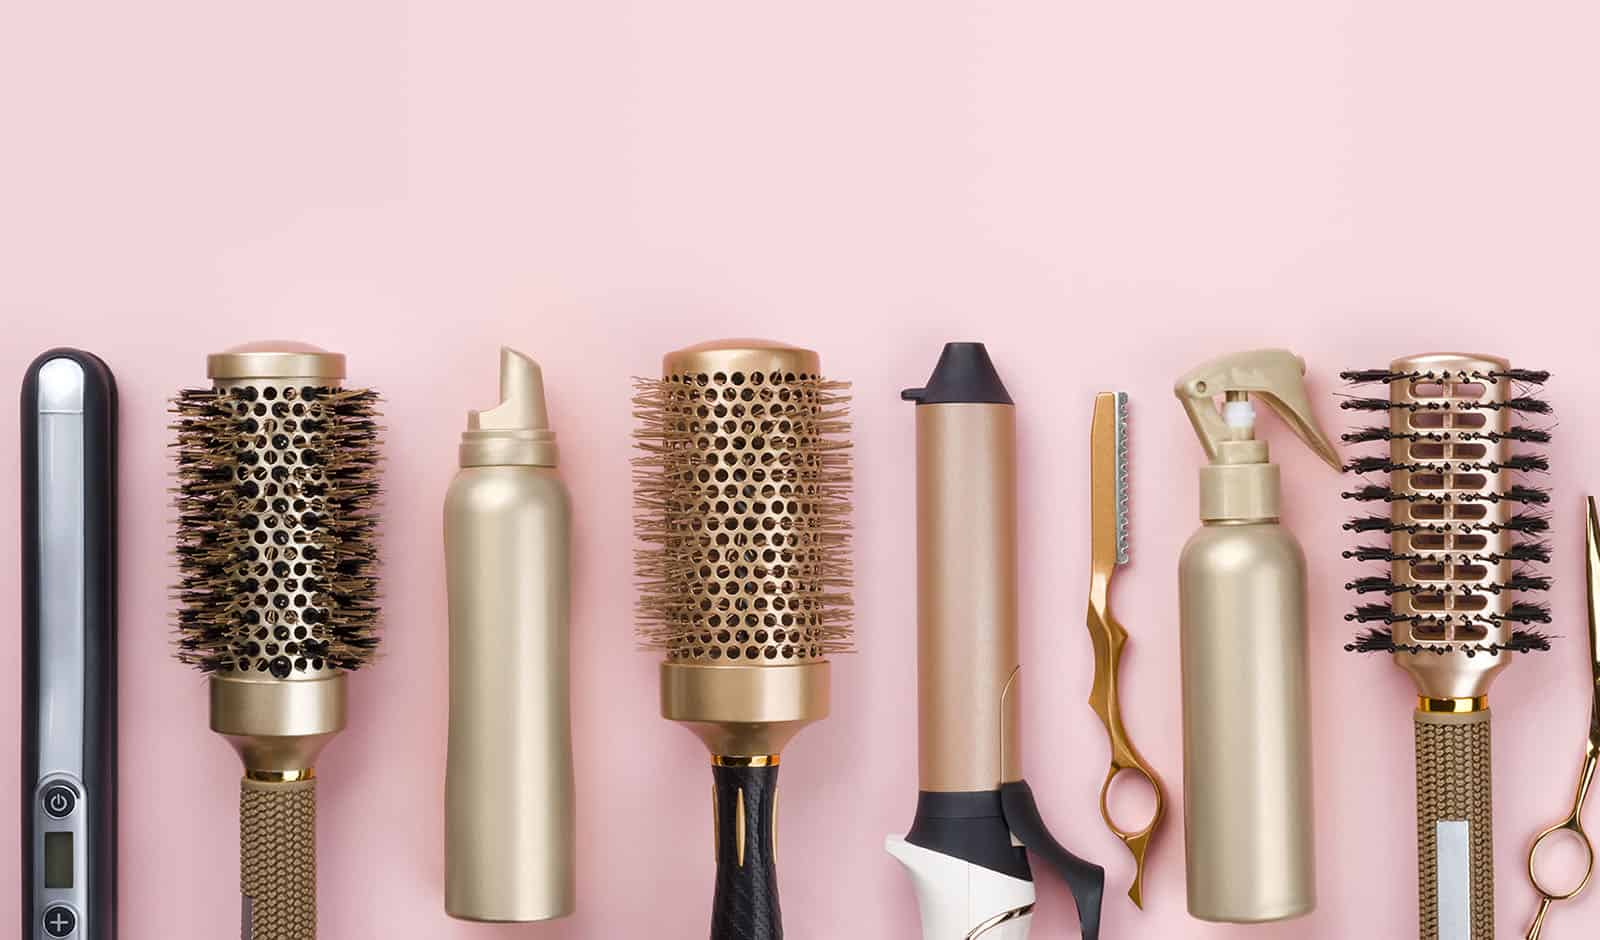 Hair Tools: Be Aware and Take Care - VIVA GLAM MAGAZINE™